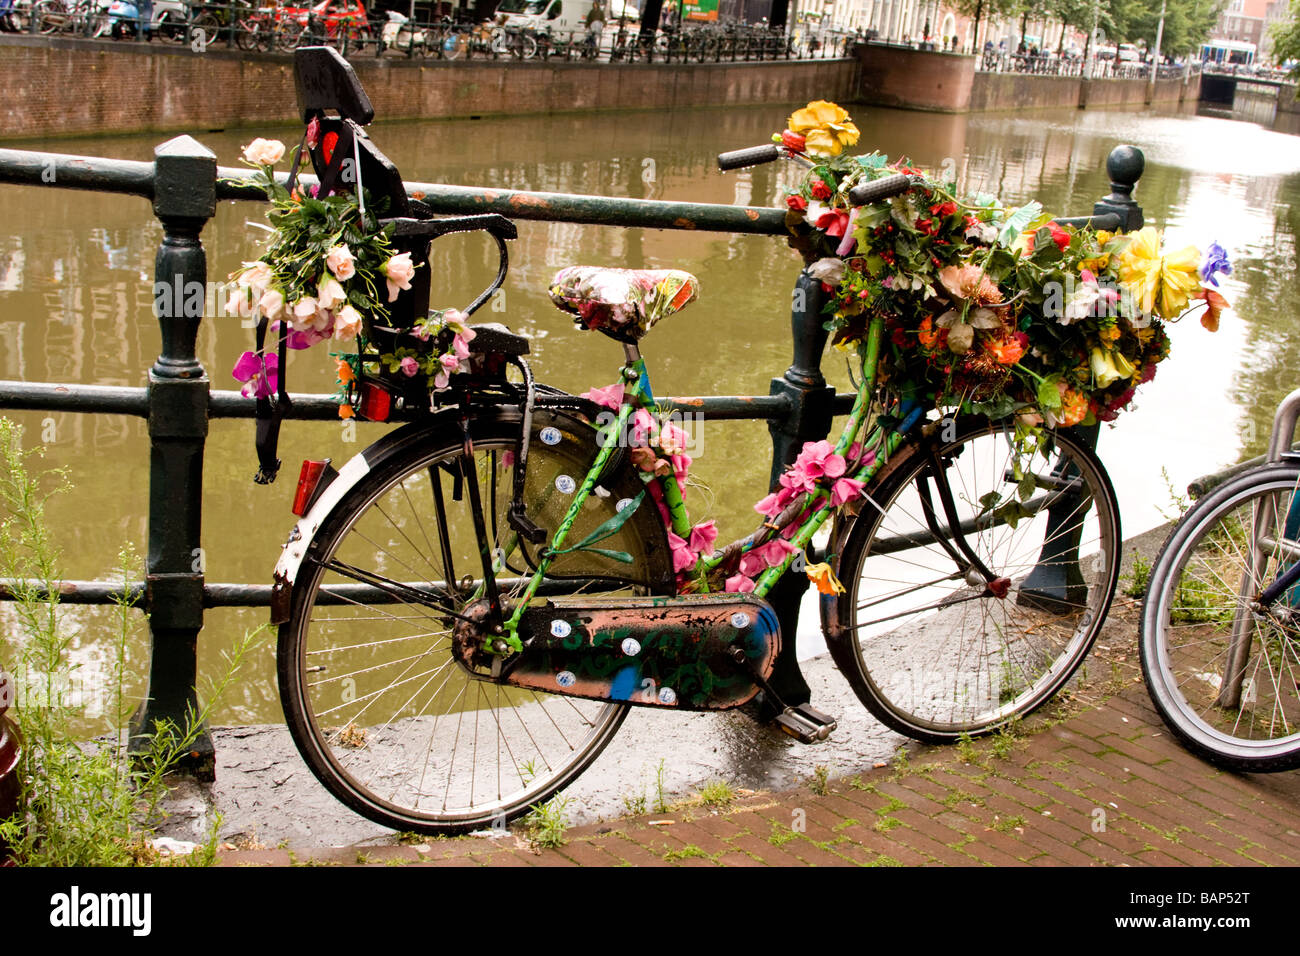 bicycle festooned or garlanded with articficial flowers on a canal bank in Amsterdam Holland - Stock Image